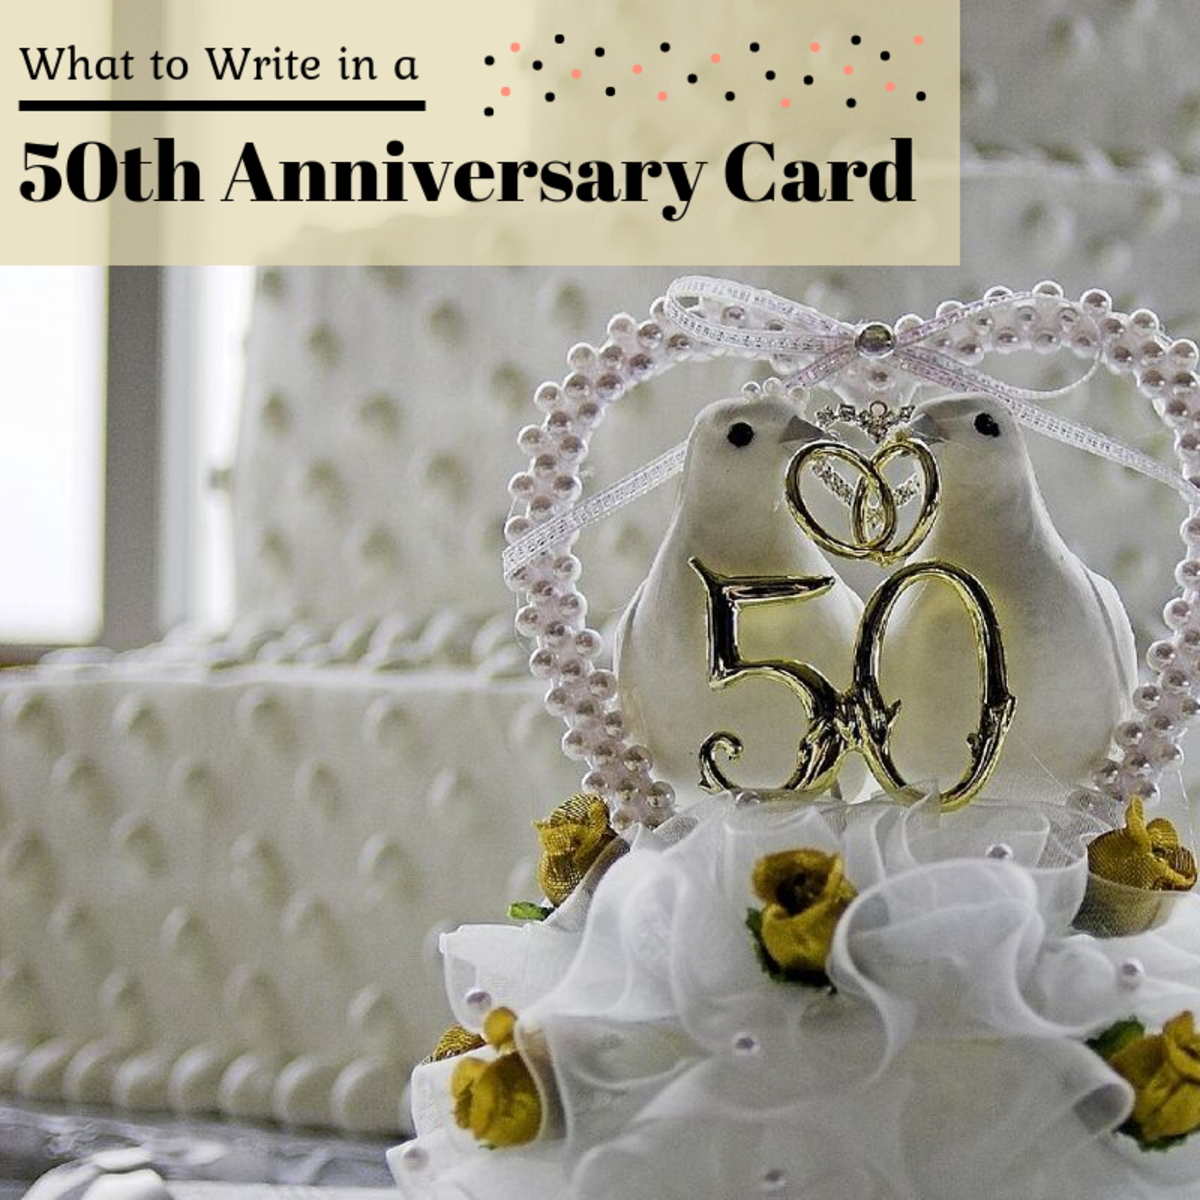 50th Anniversary Wishes What To Write In A Card Holidappy